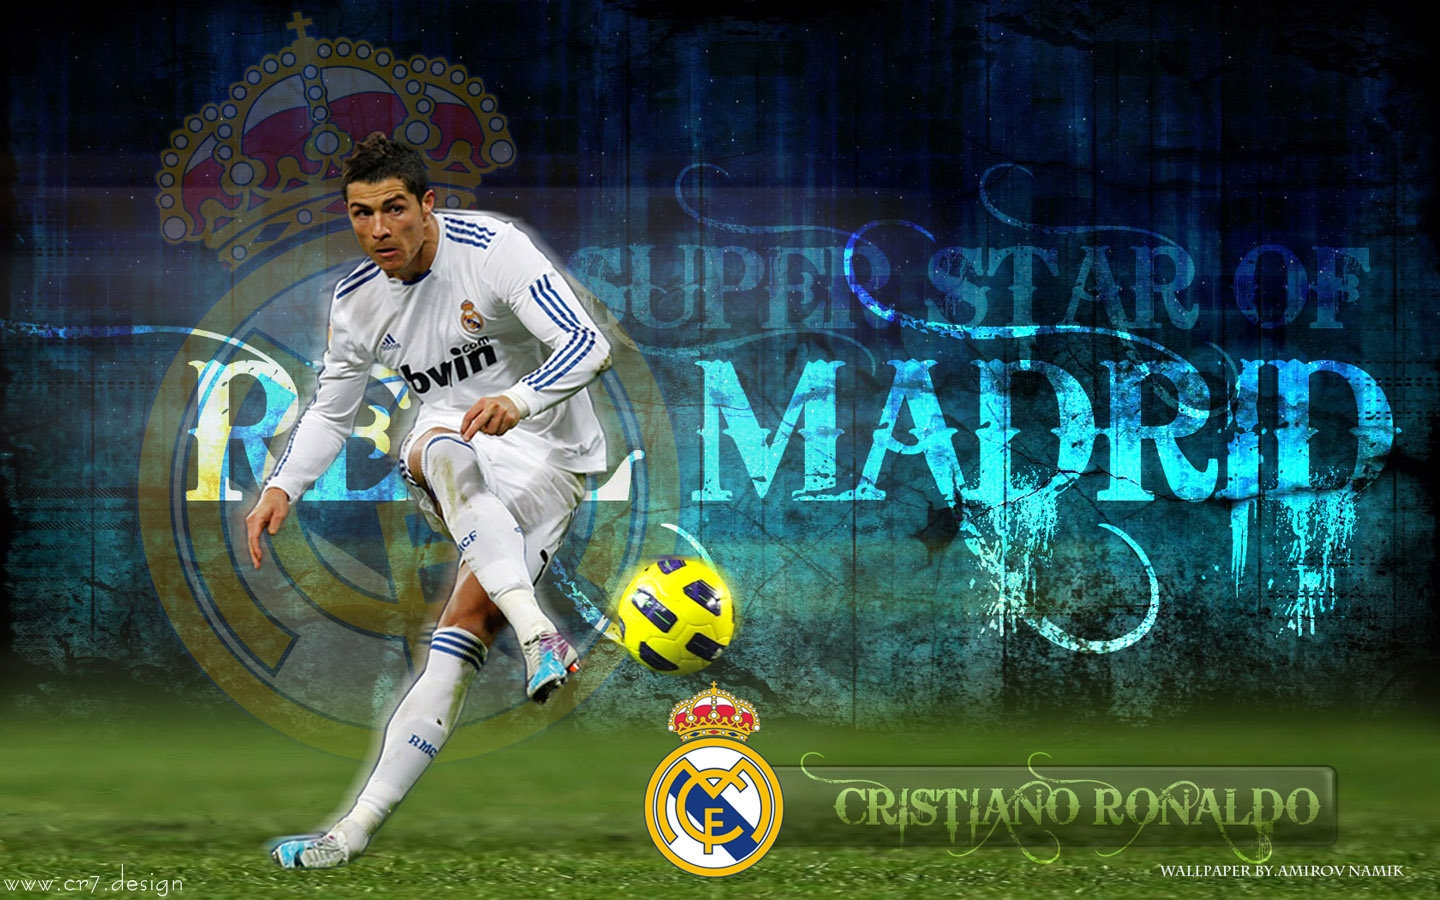 ciristiano-ronaldo-wallpaper-design-76